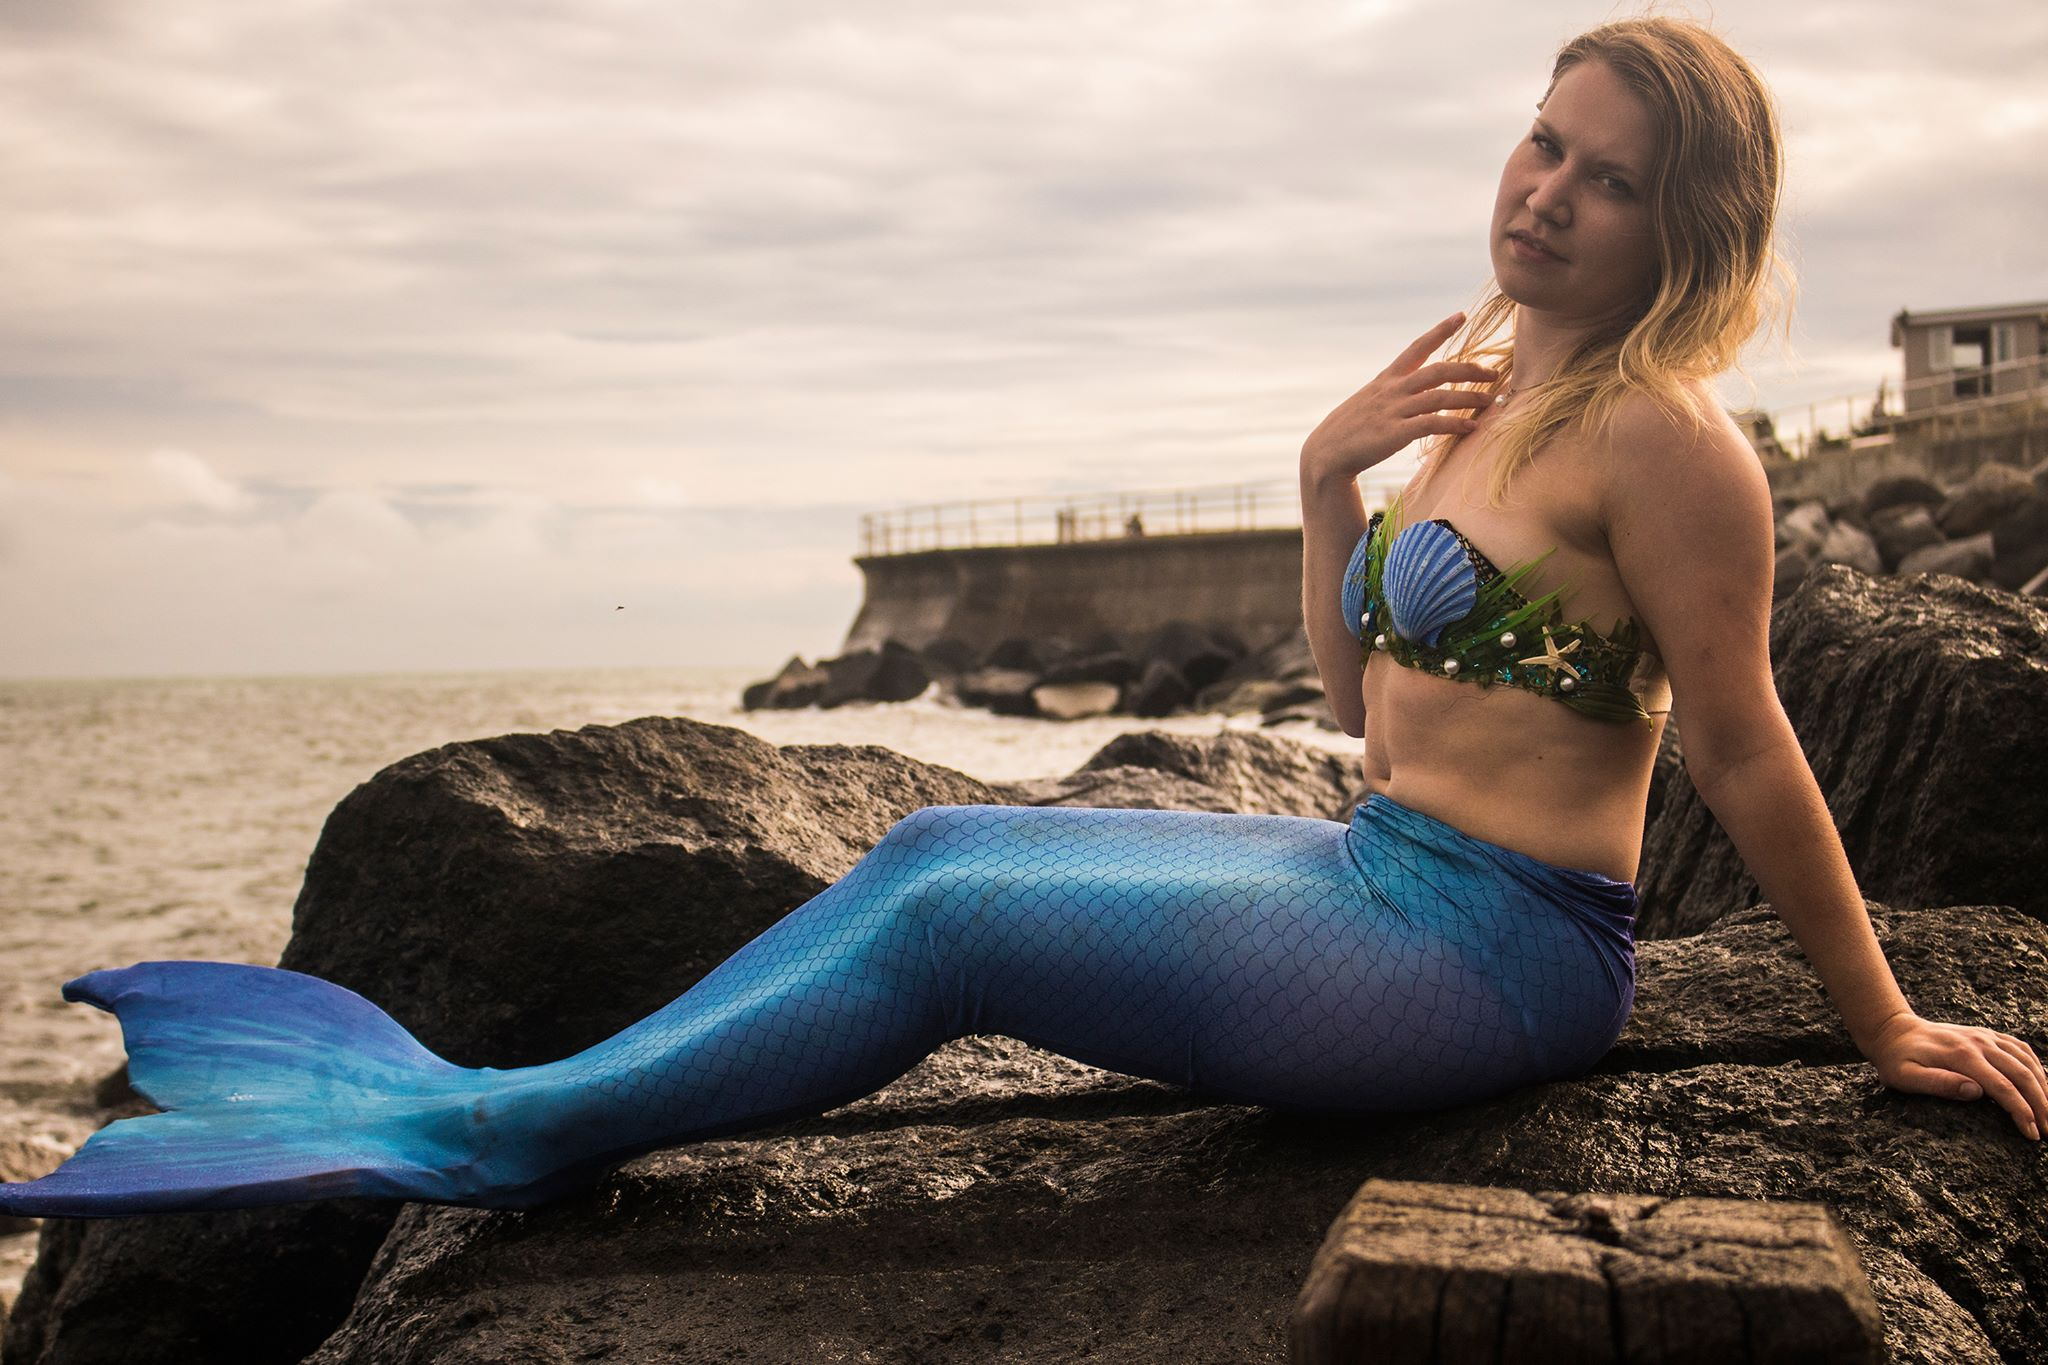 Mermaid sighting on the Isle of Wight!